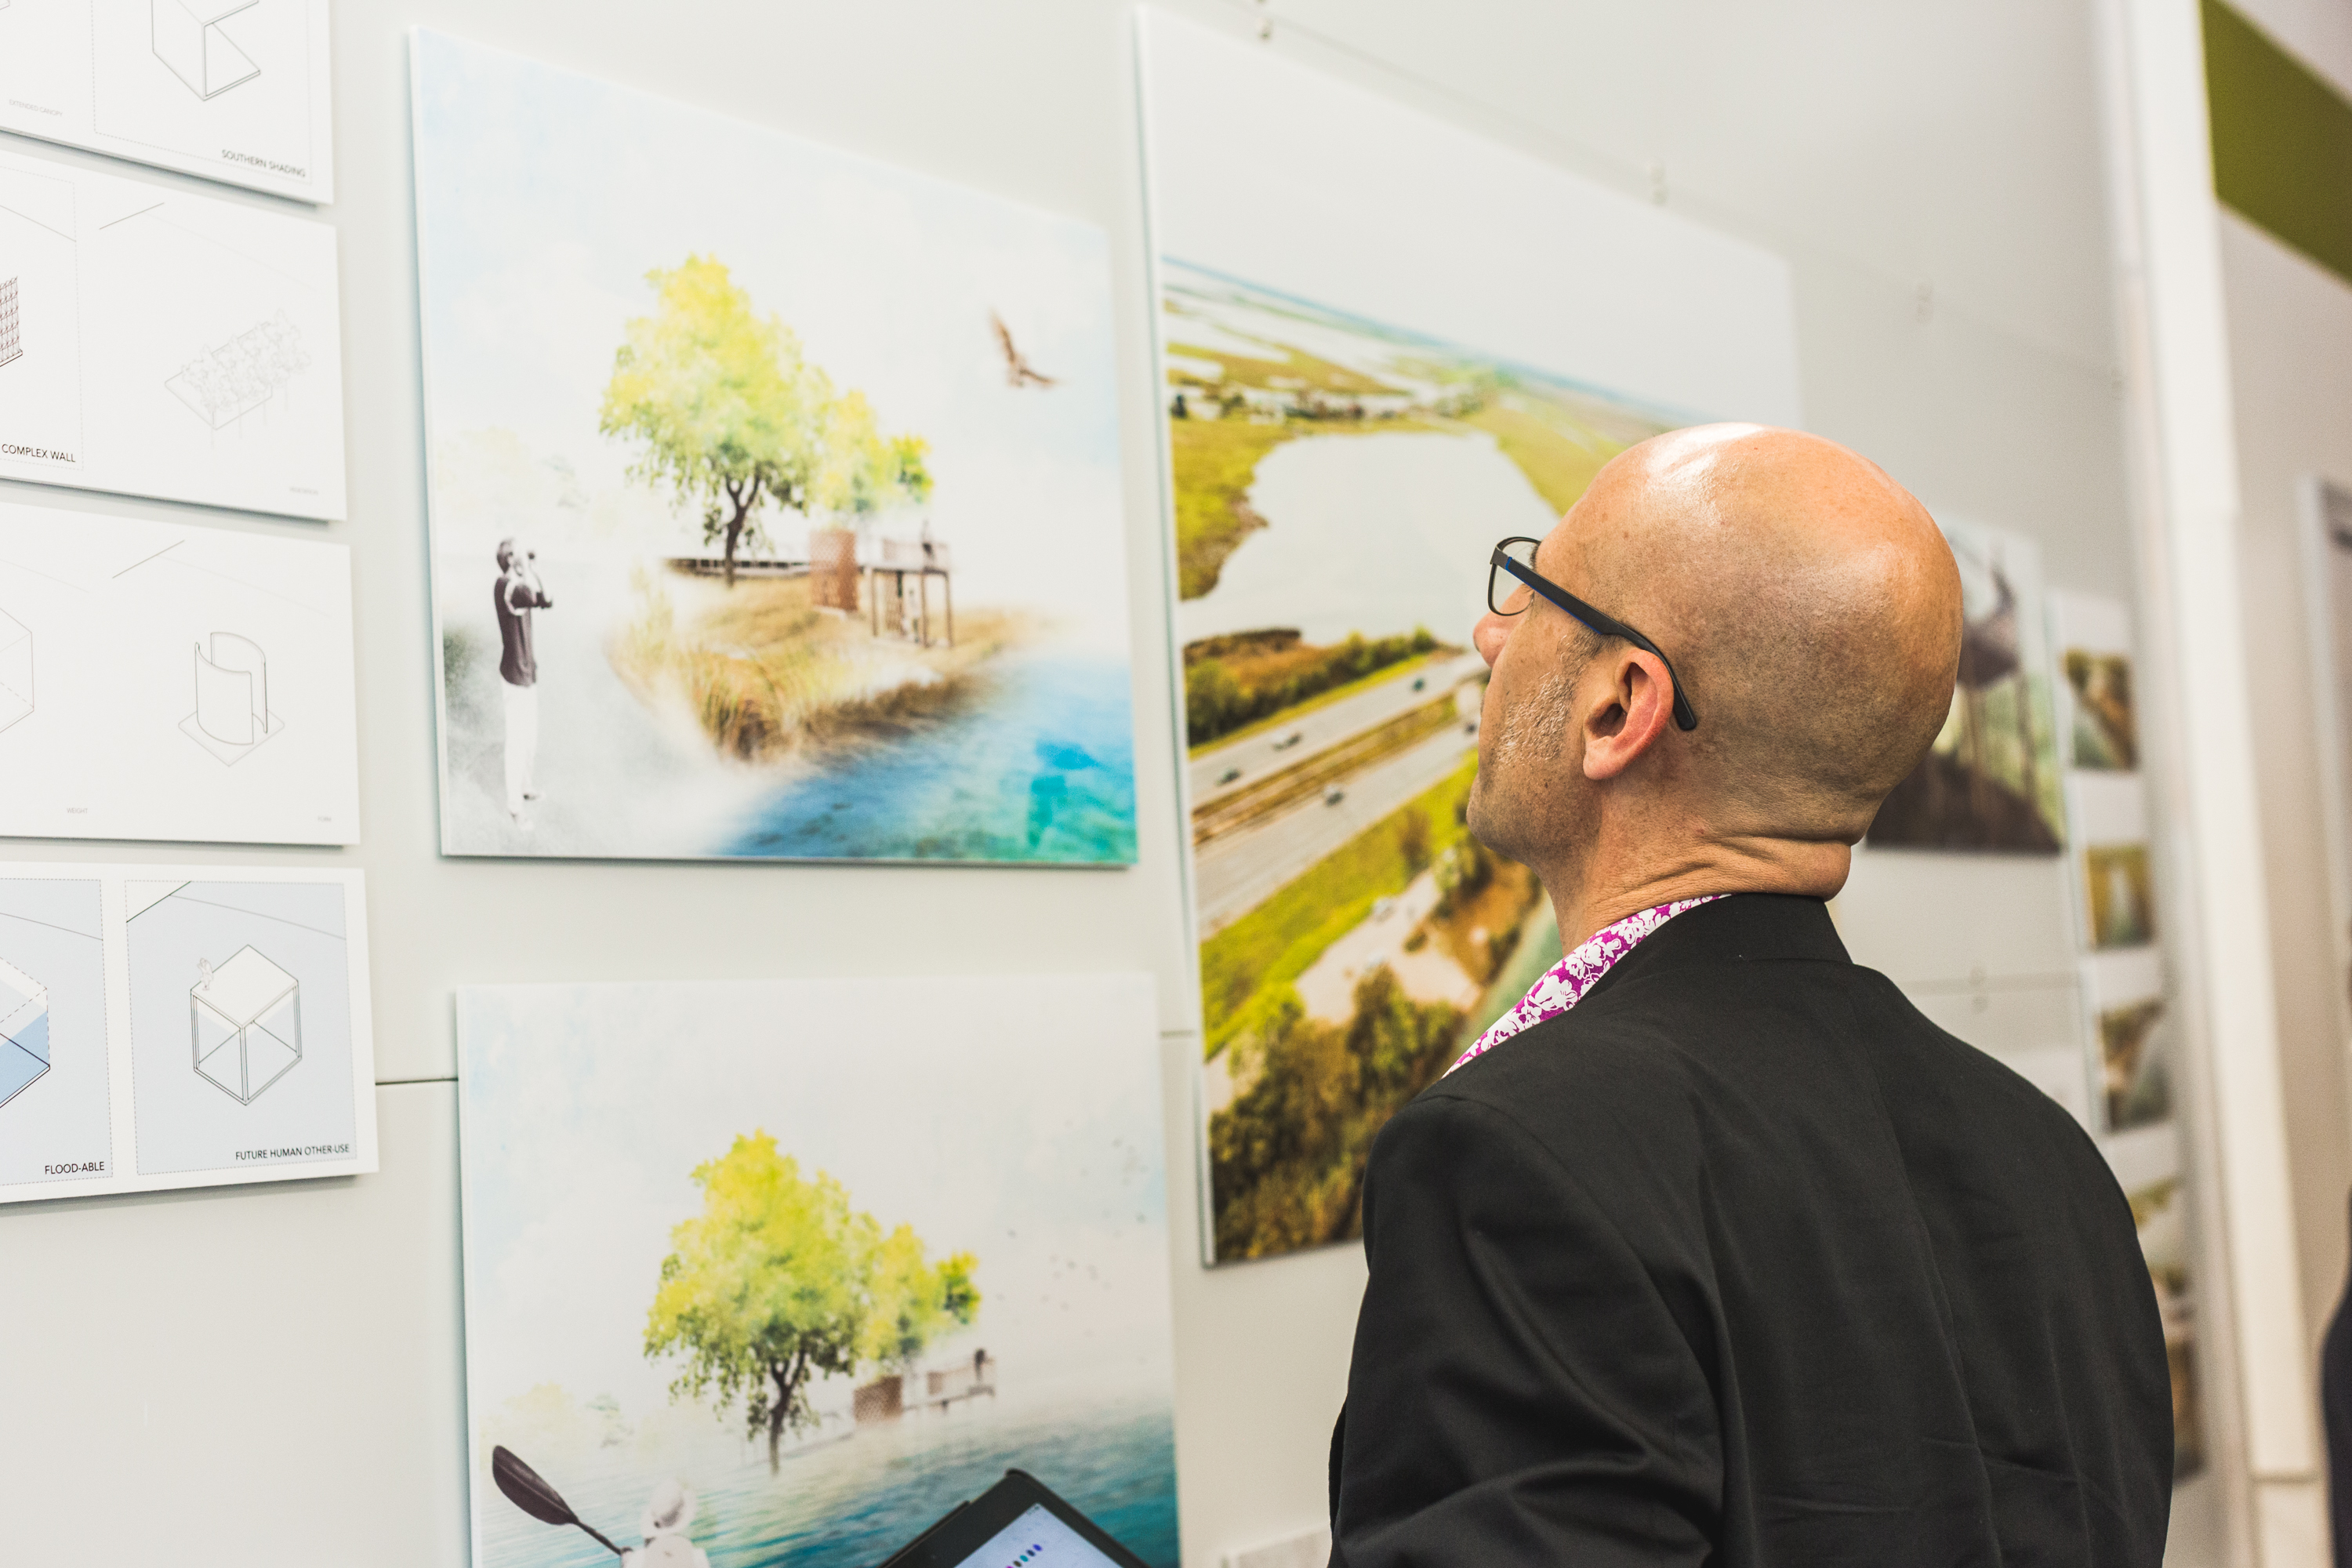 Man in glasses looks at a series of drawings of a bayou-side viewing platform pinned up